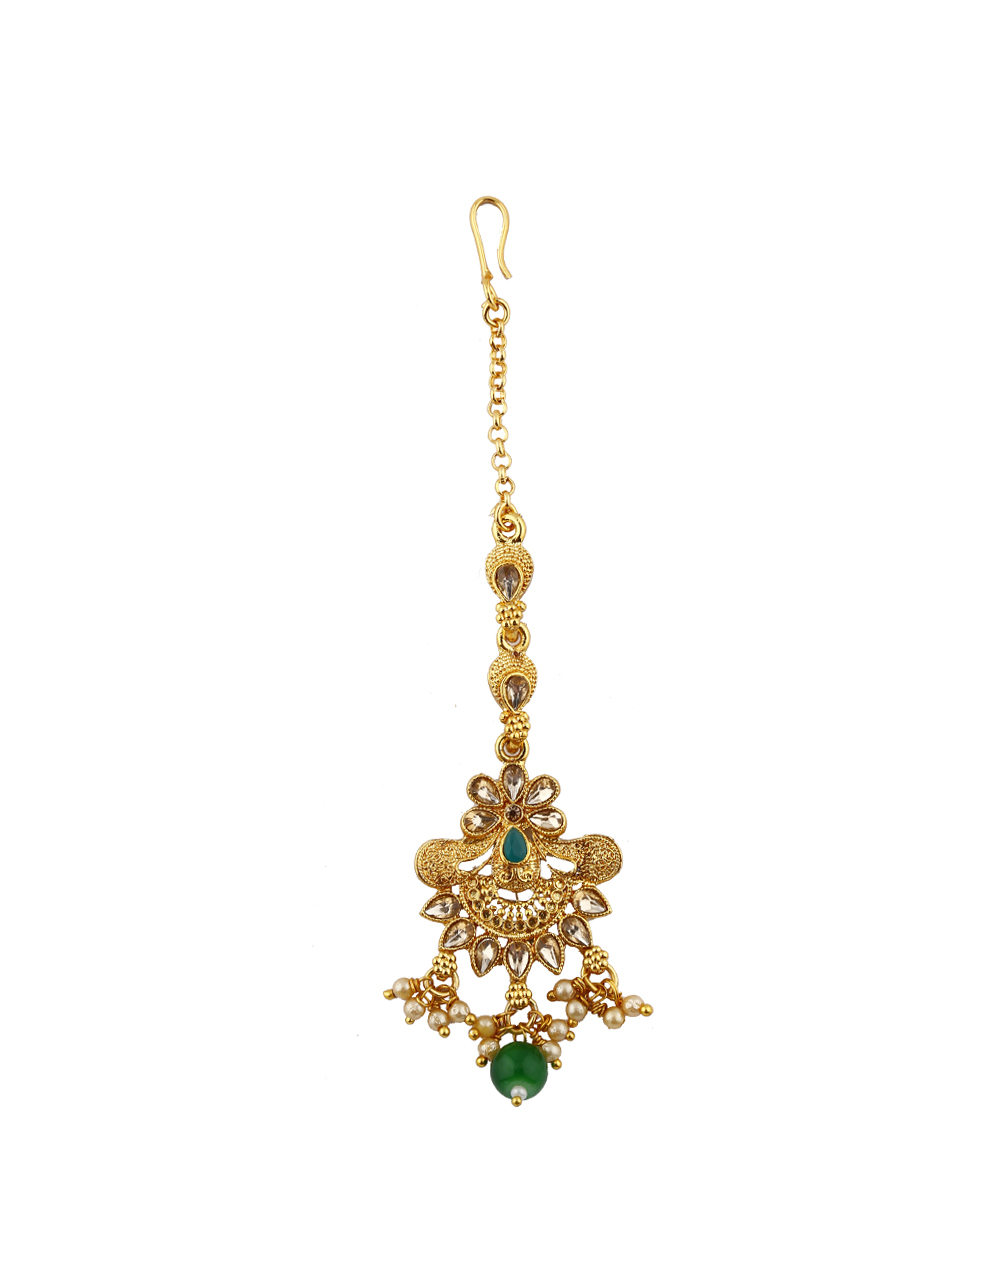 Traditional Golden Colour With Green Stone Droplet Maang Tikka.